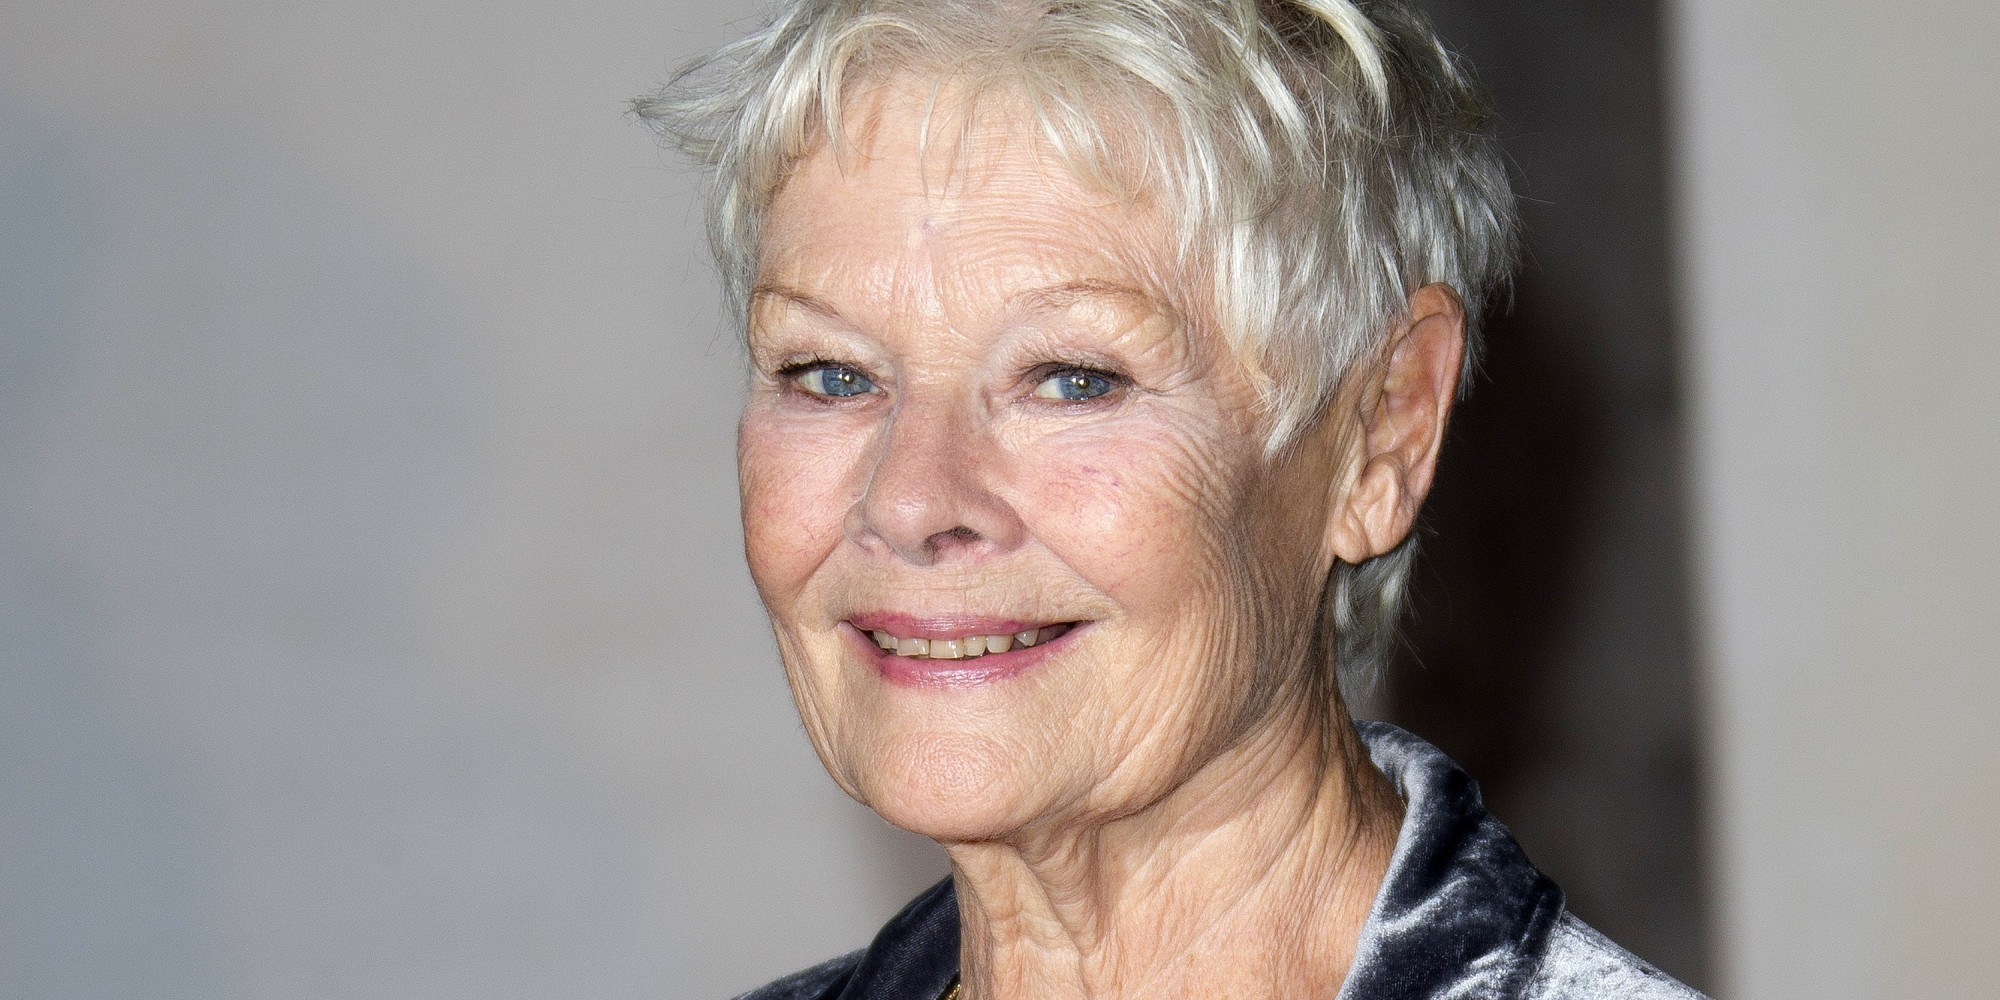 "FILE - This Oct. 17, 2013 file photo shows British actress Judi Dench at the Globe Theatre in central London, for a Gala evening. Dench was nominated for a Golden Globe for best actress in a motion picture drama for her role in the film ""Philomena"" on Thursday, Dec. 12, 2013. The 71st annual Golden Globes will air on Sunday, Jan. 12. (Photo by Joel Ryan/Invision/AP, File)"